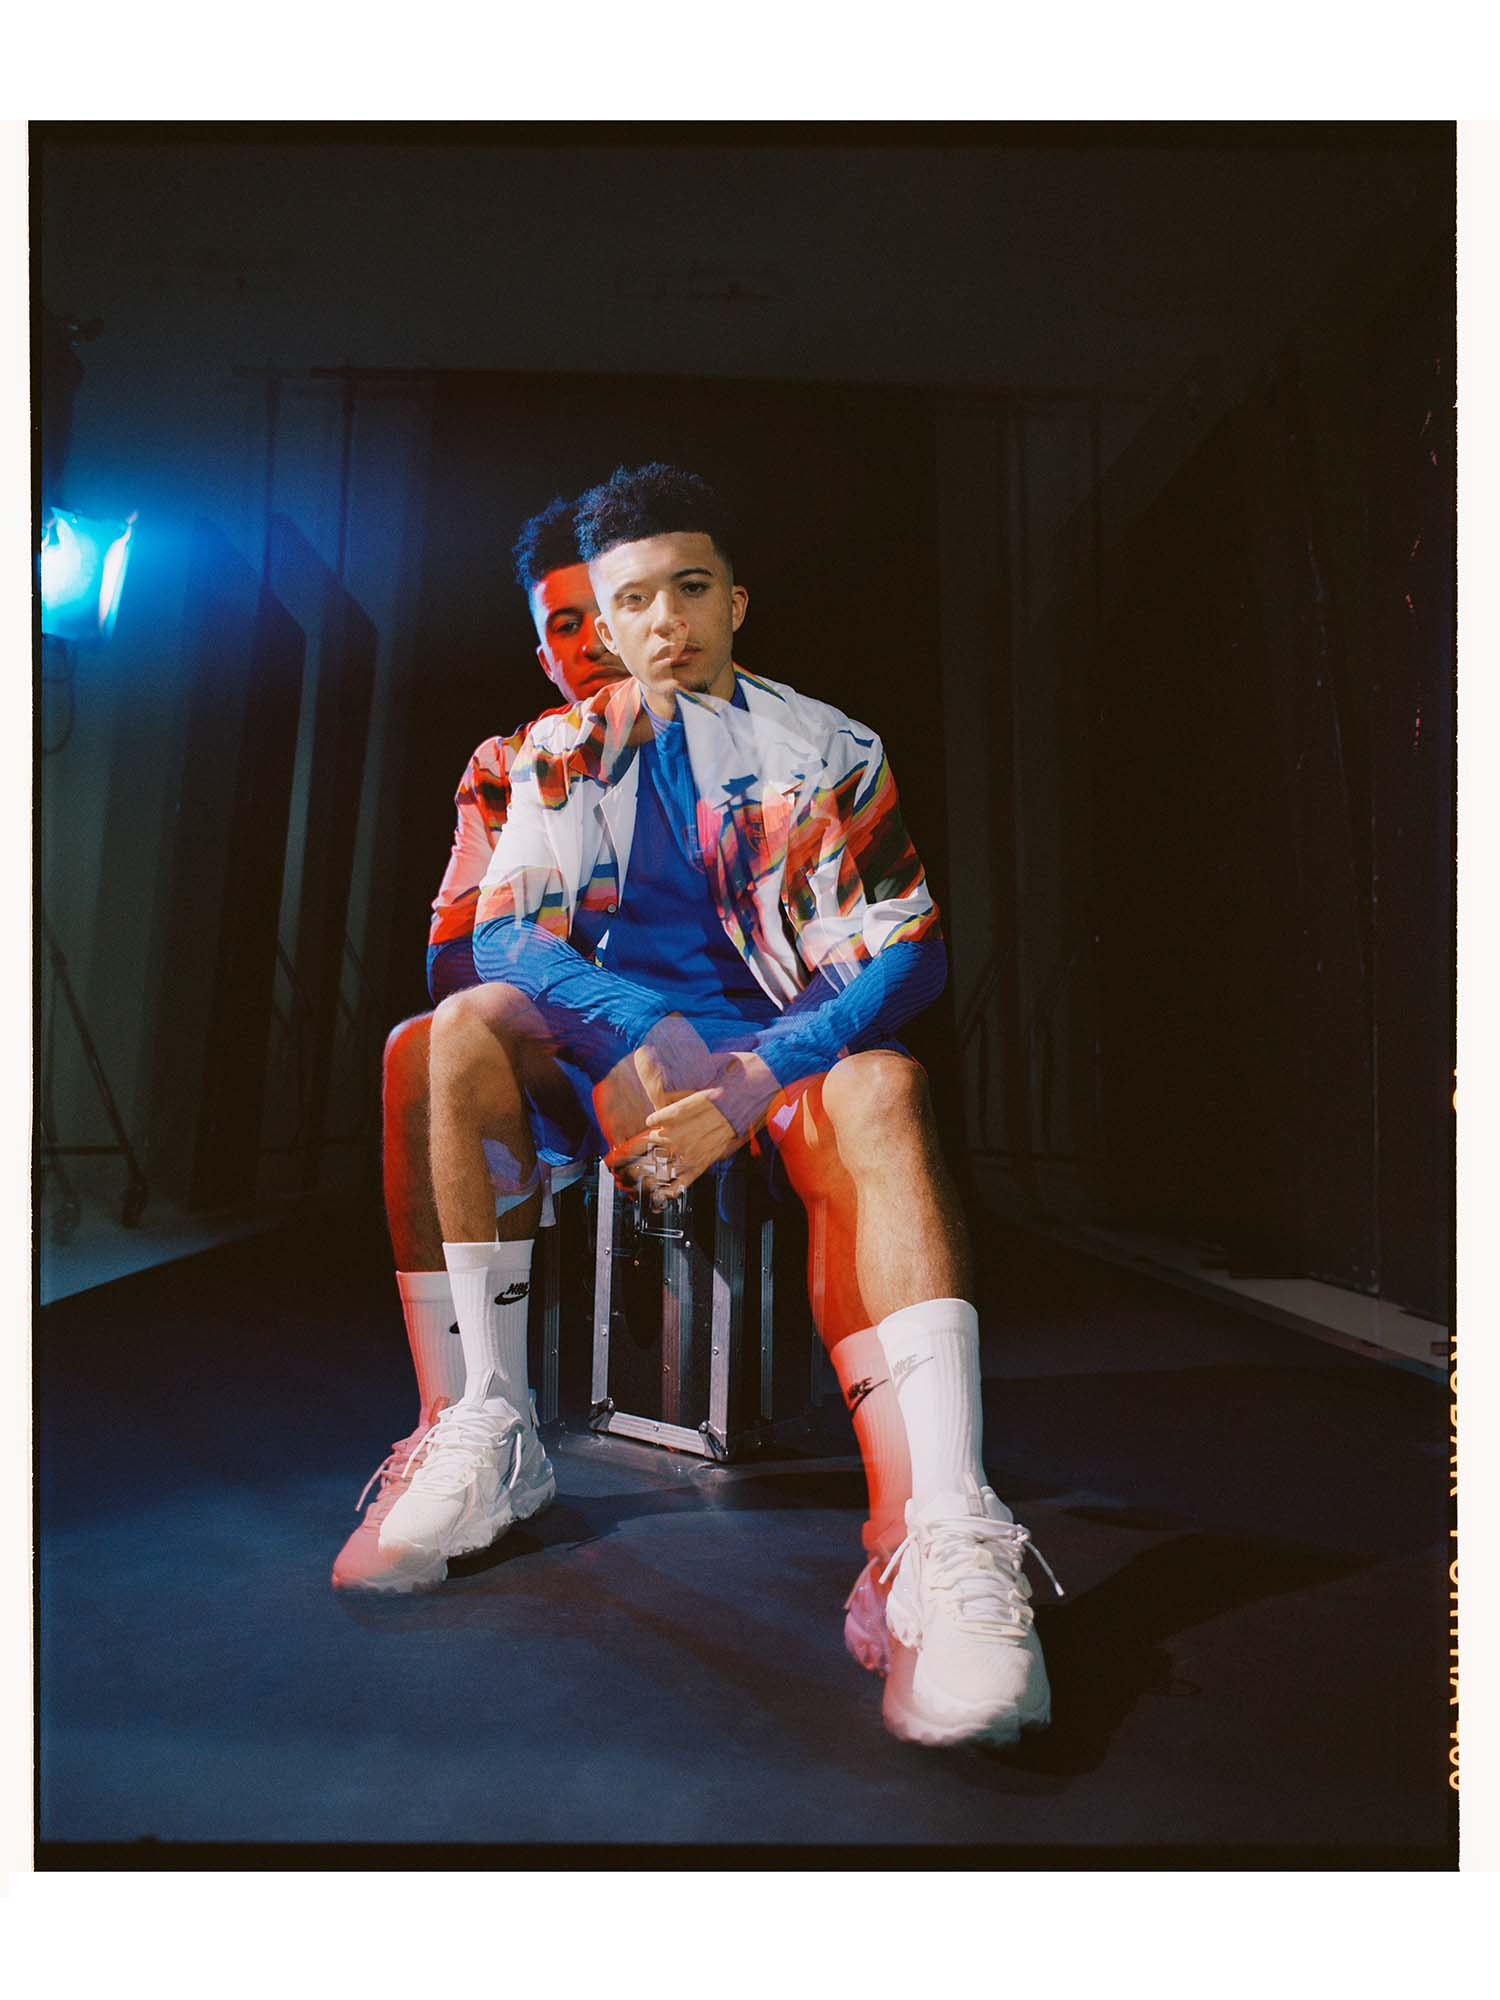 jadon sancho soccerbible interview england portrait_0004_jph180820_ 004.jpg